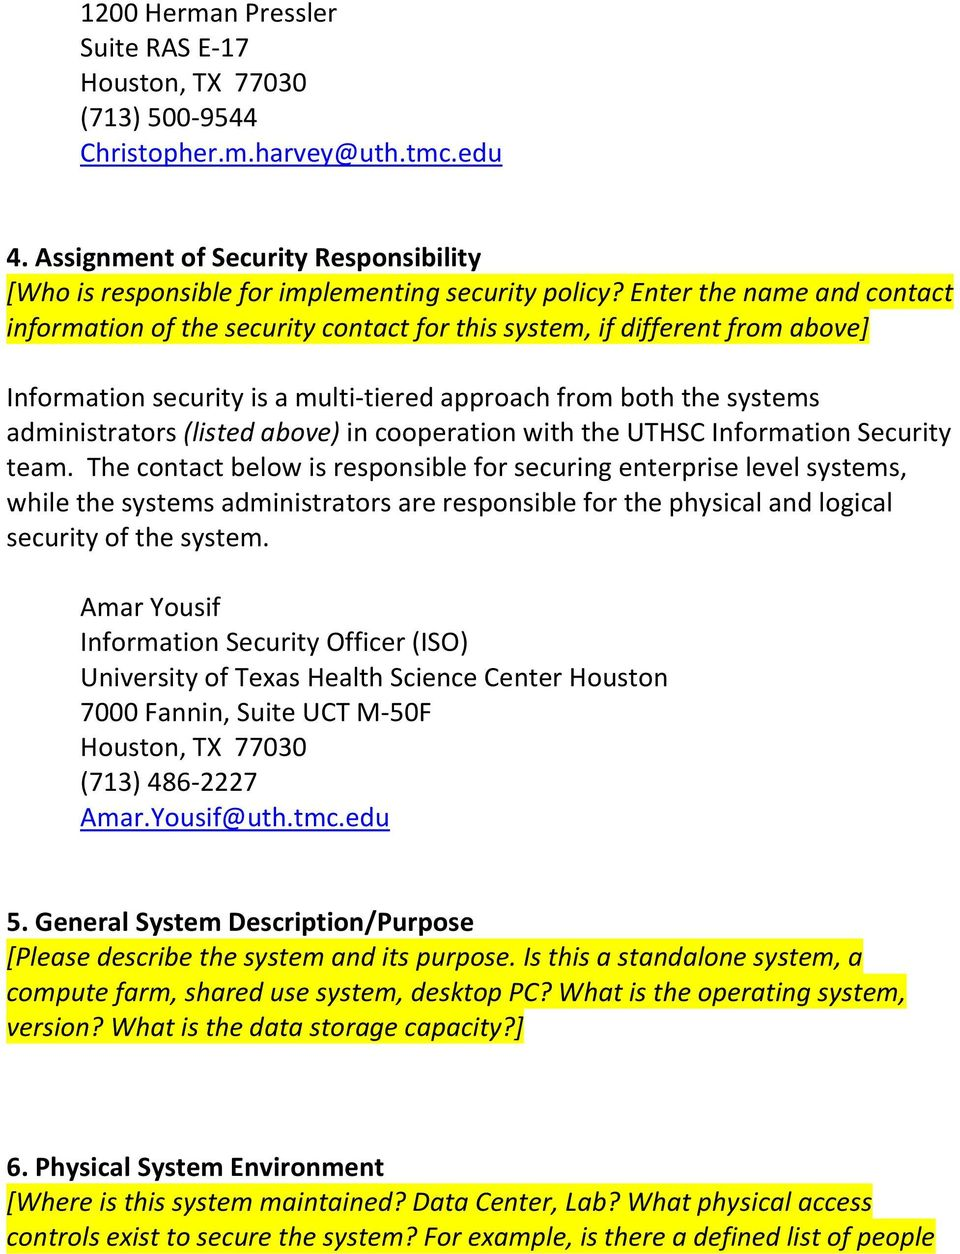 above) in cooperation with the UTHSC Information Security team.